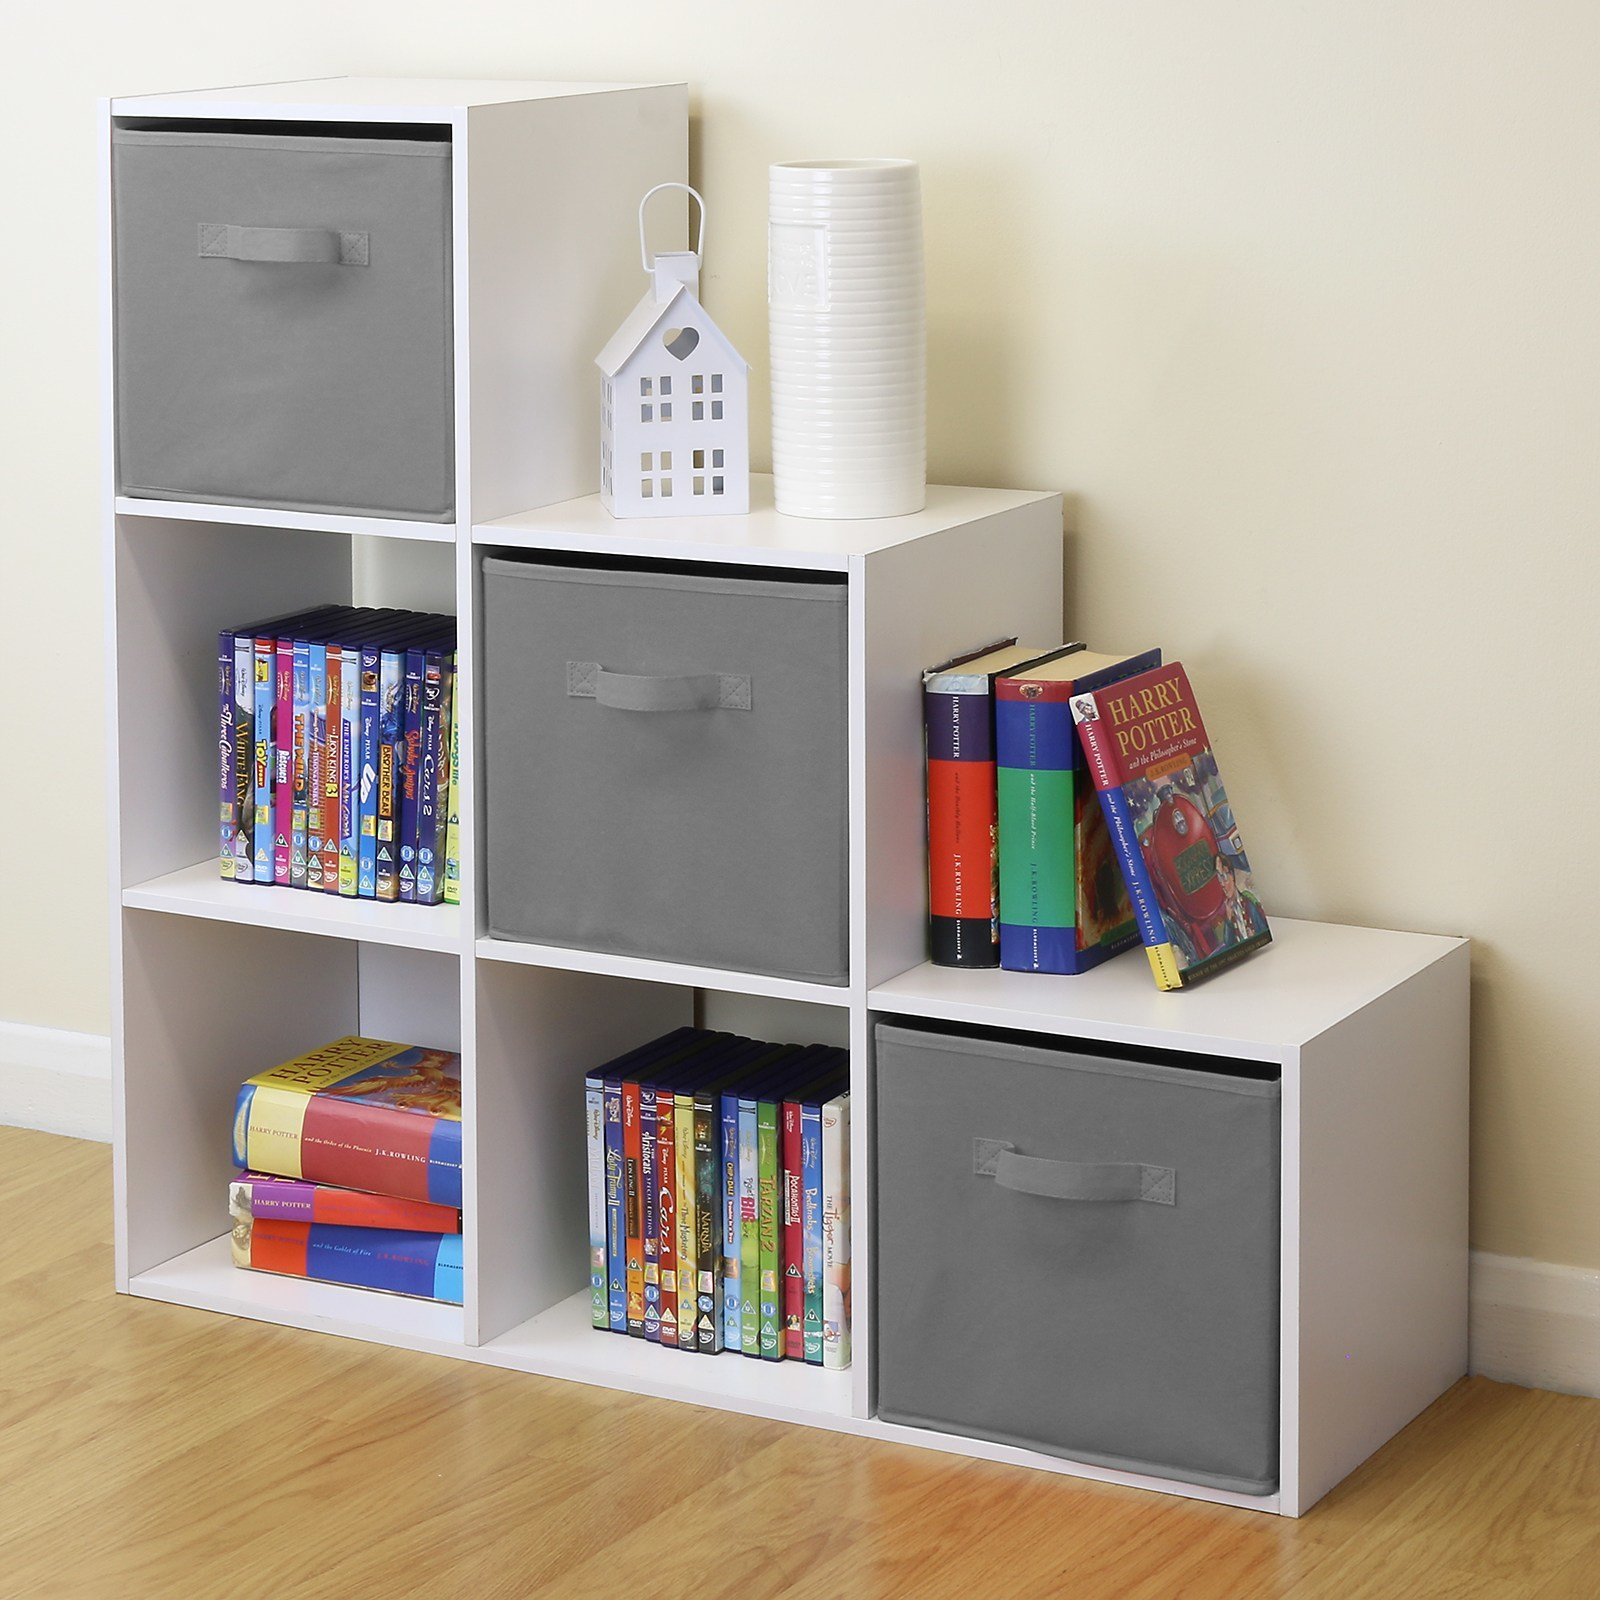 Best White 6 Cube Kids Toy Games Storage Unit Girls Boys Bedroom Shelves 3 Grey Boxes 5051990731240 With Pictures